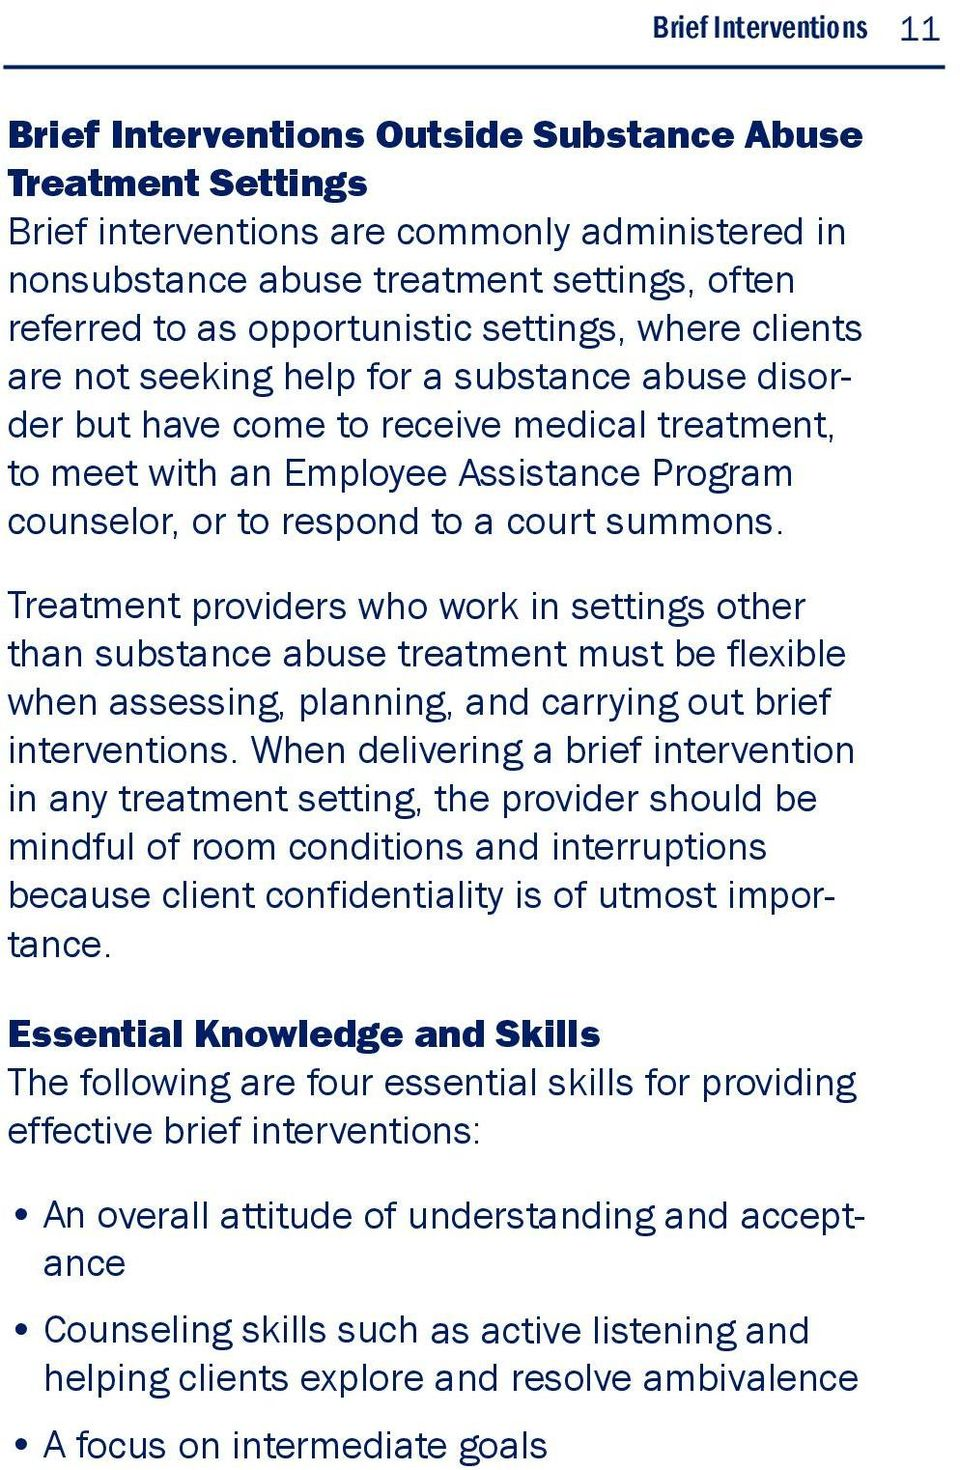 respond to a court summons. Treatment providers who work in settings other than substance abuse treatment must be flexible when assessing, planning, and carrying out brief interventions.